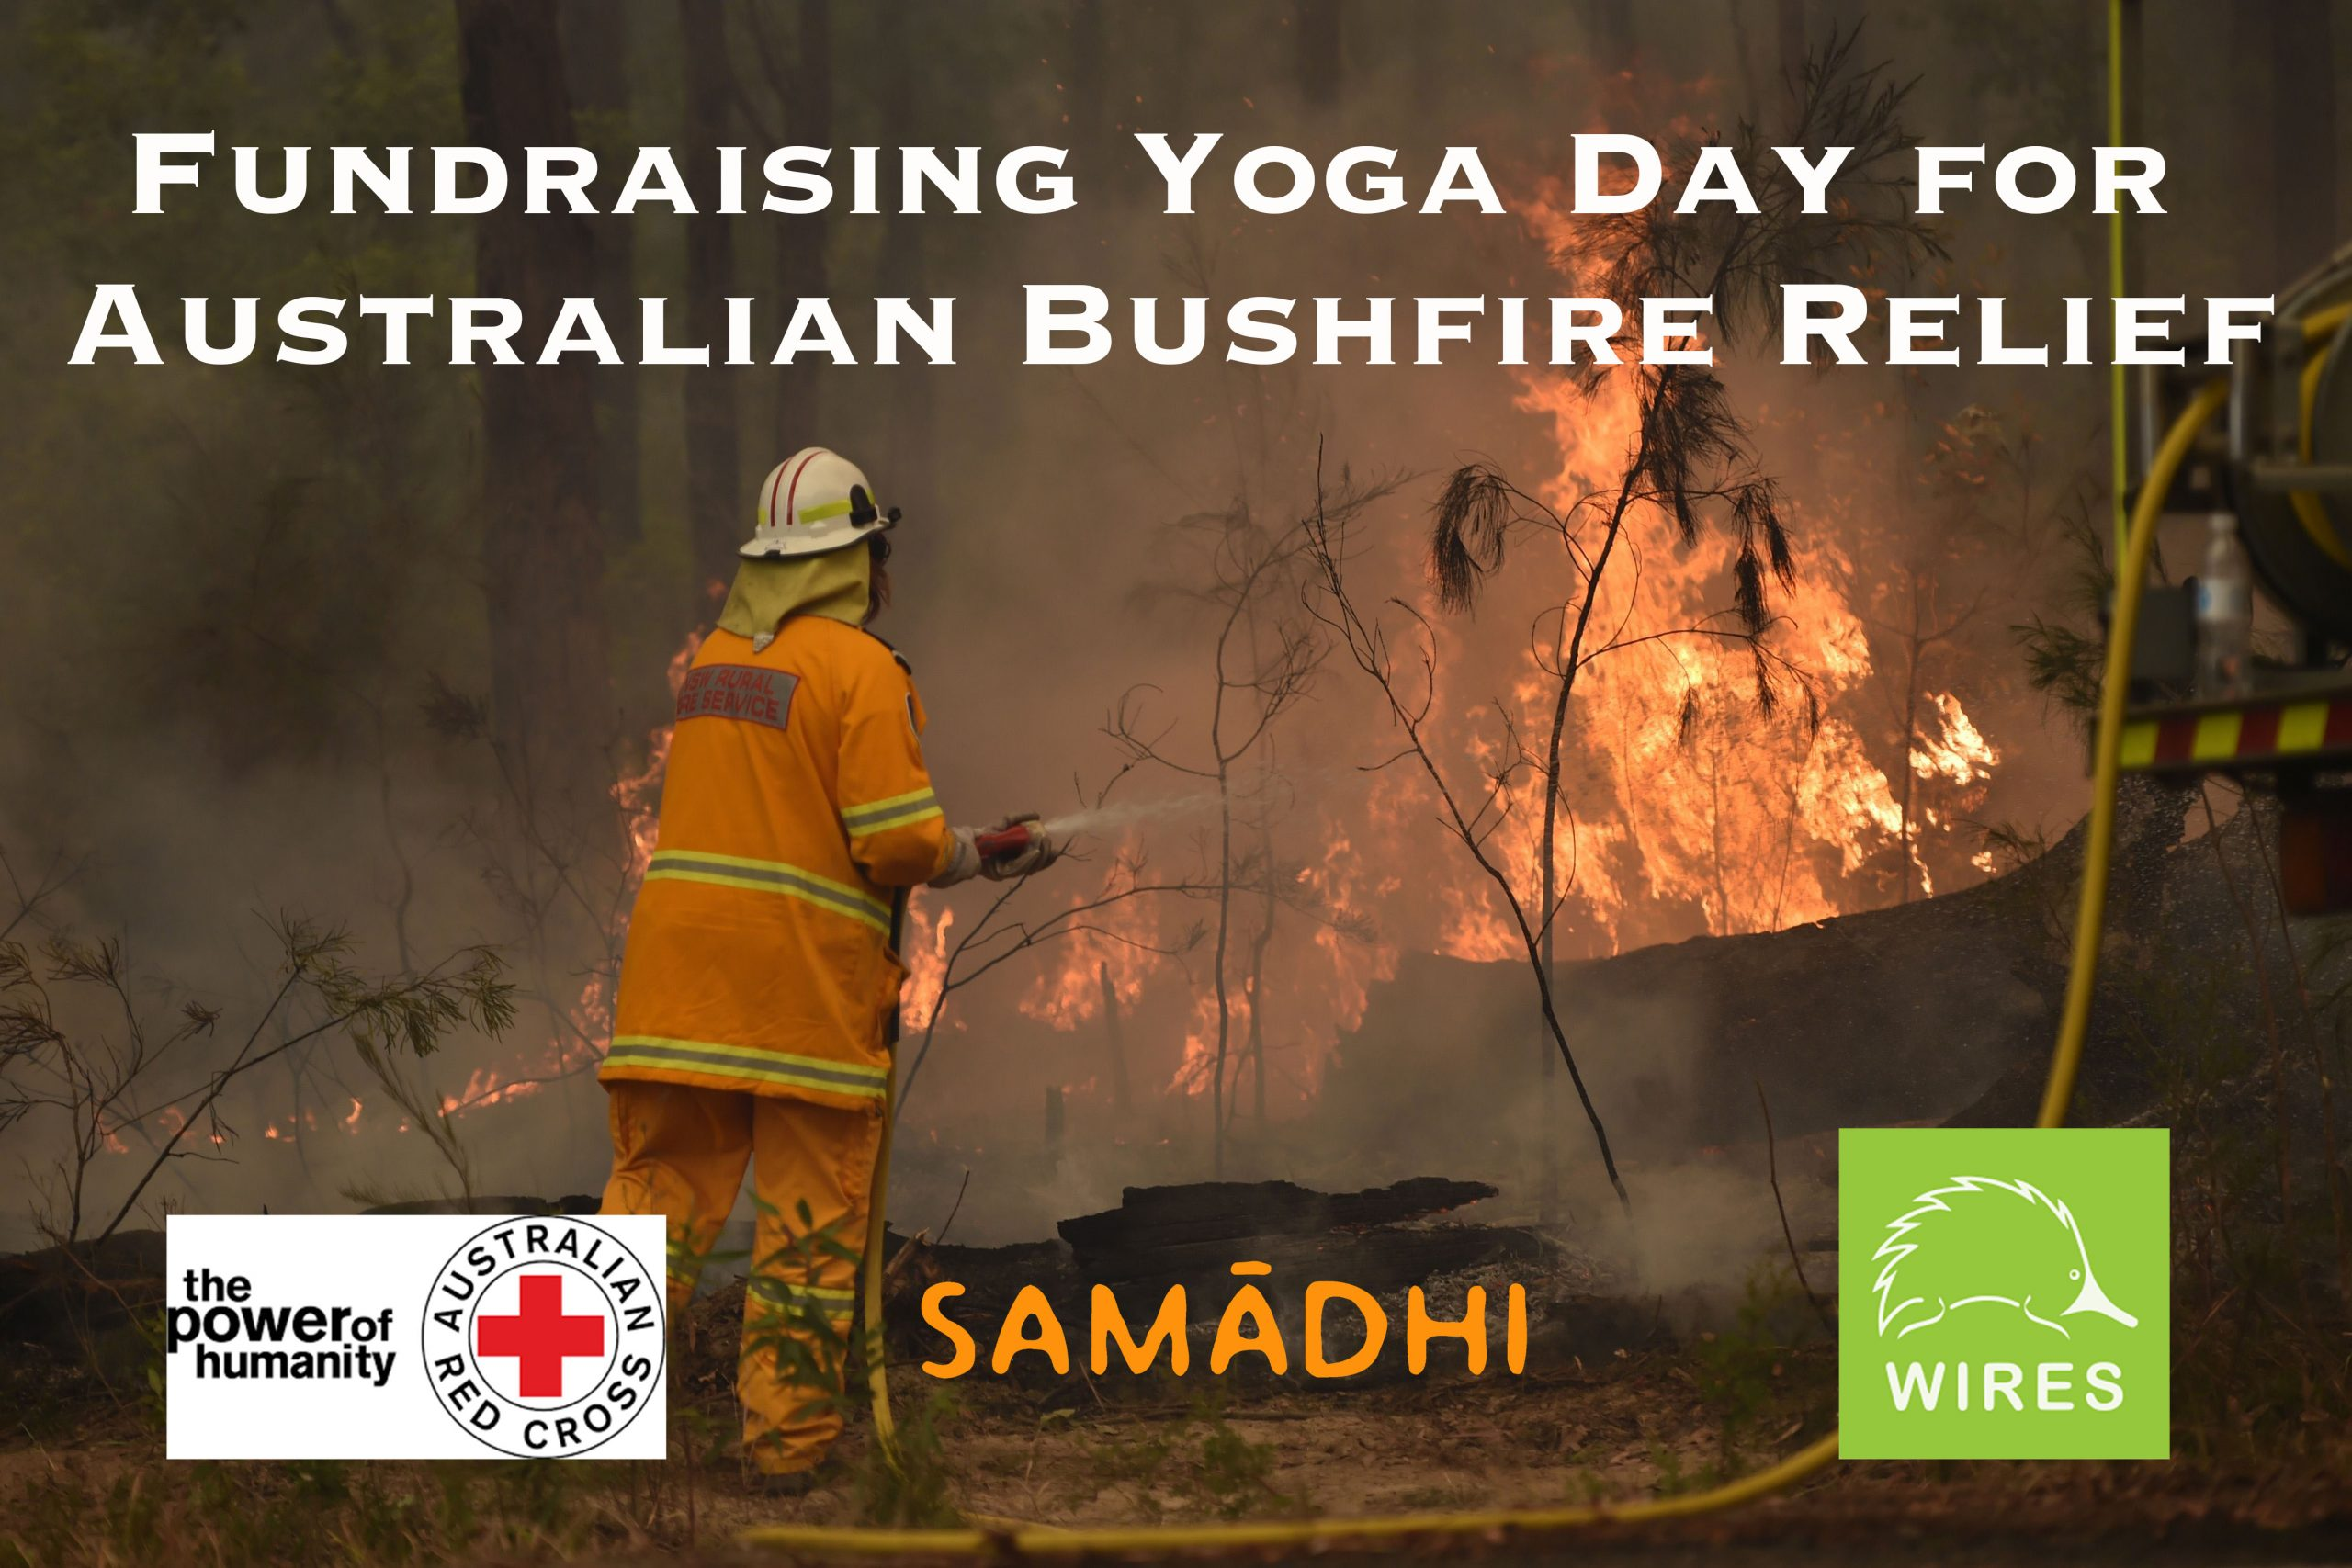 Fundraising Yoga Day for Australian Bushfire Relief